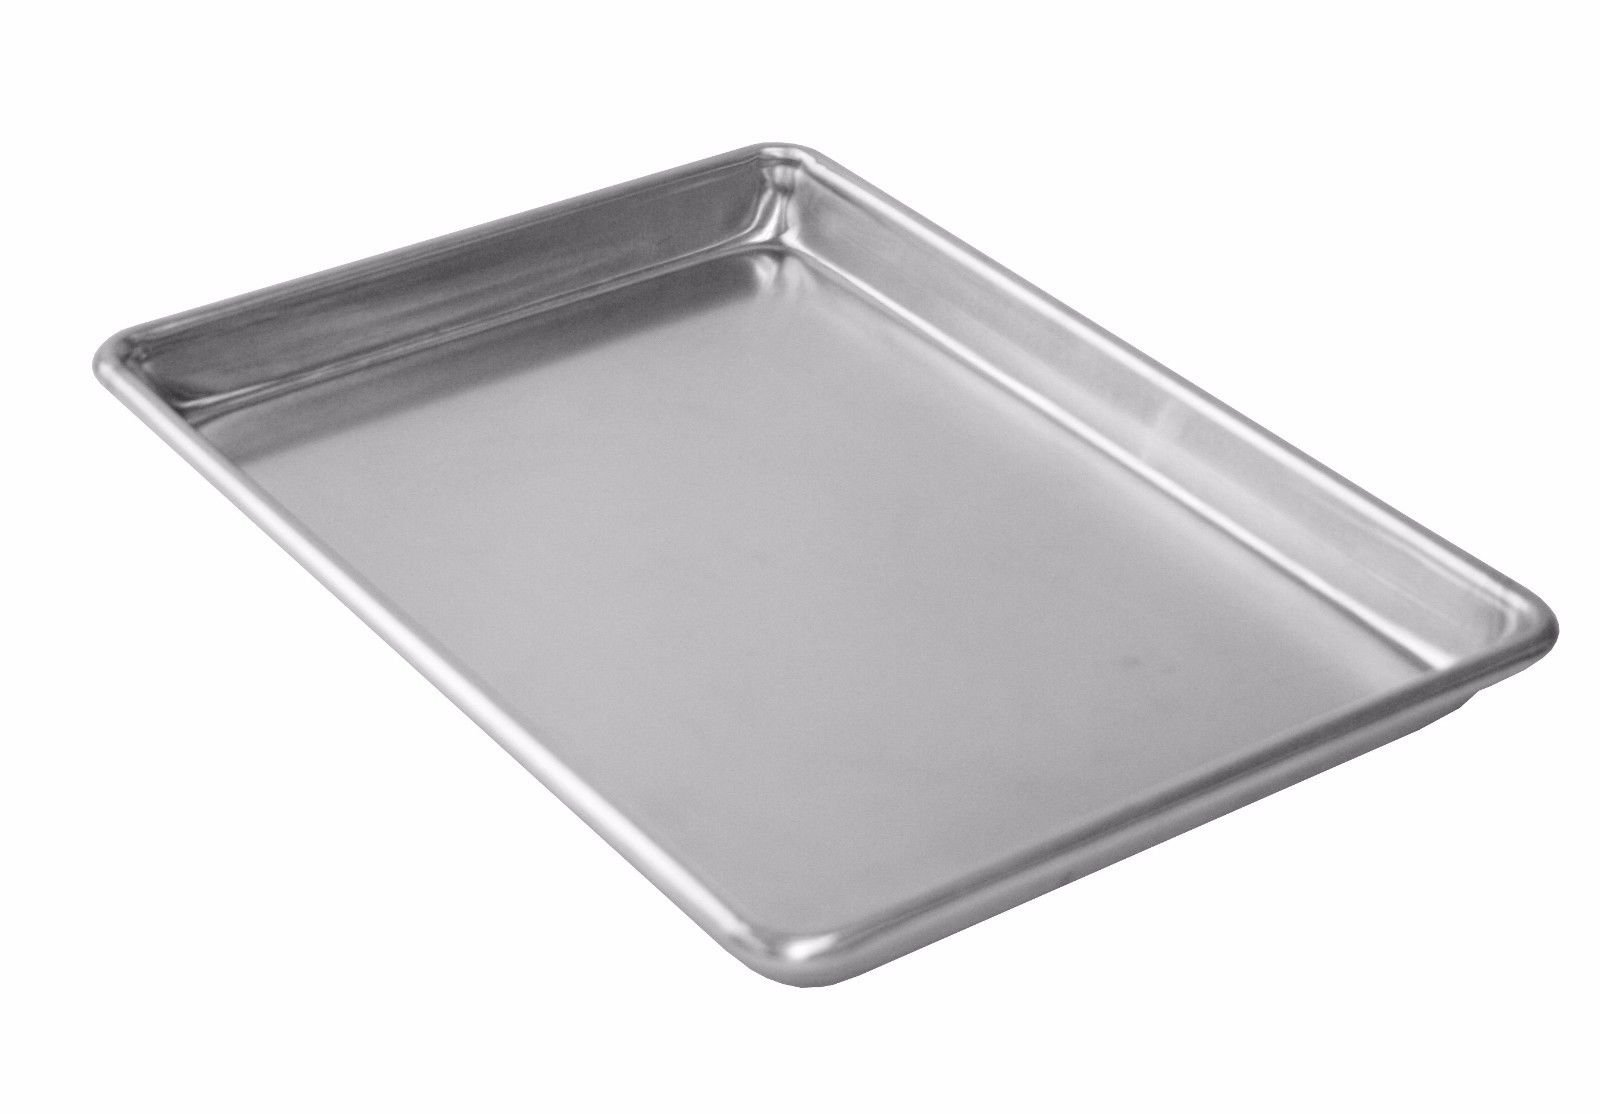 Commercial Aluminum Baking Cookie Sheet Pans 18 x 13 Half Size - 12 Pans NSF